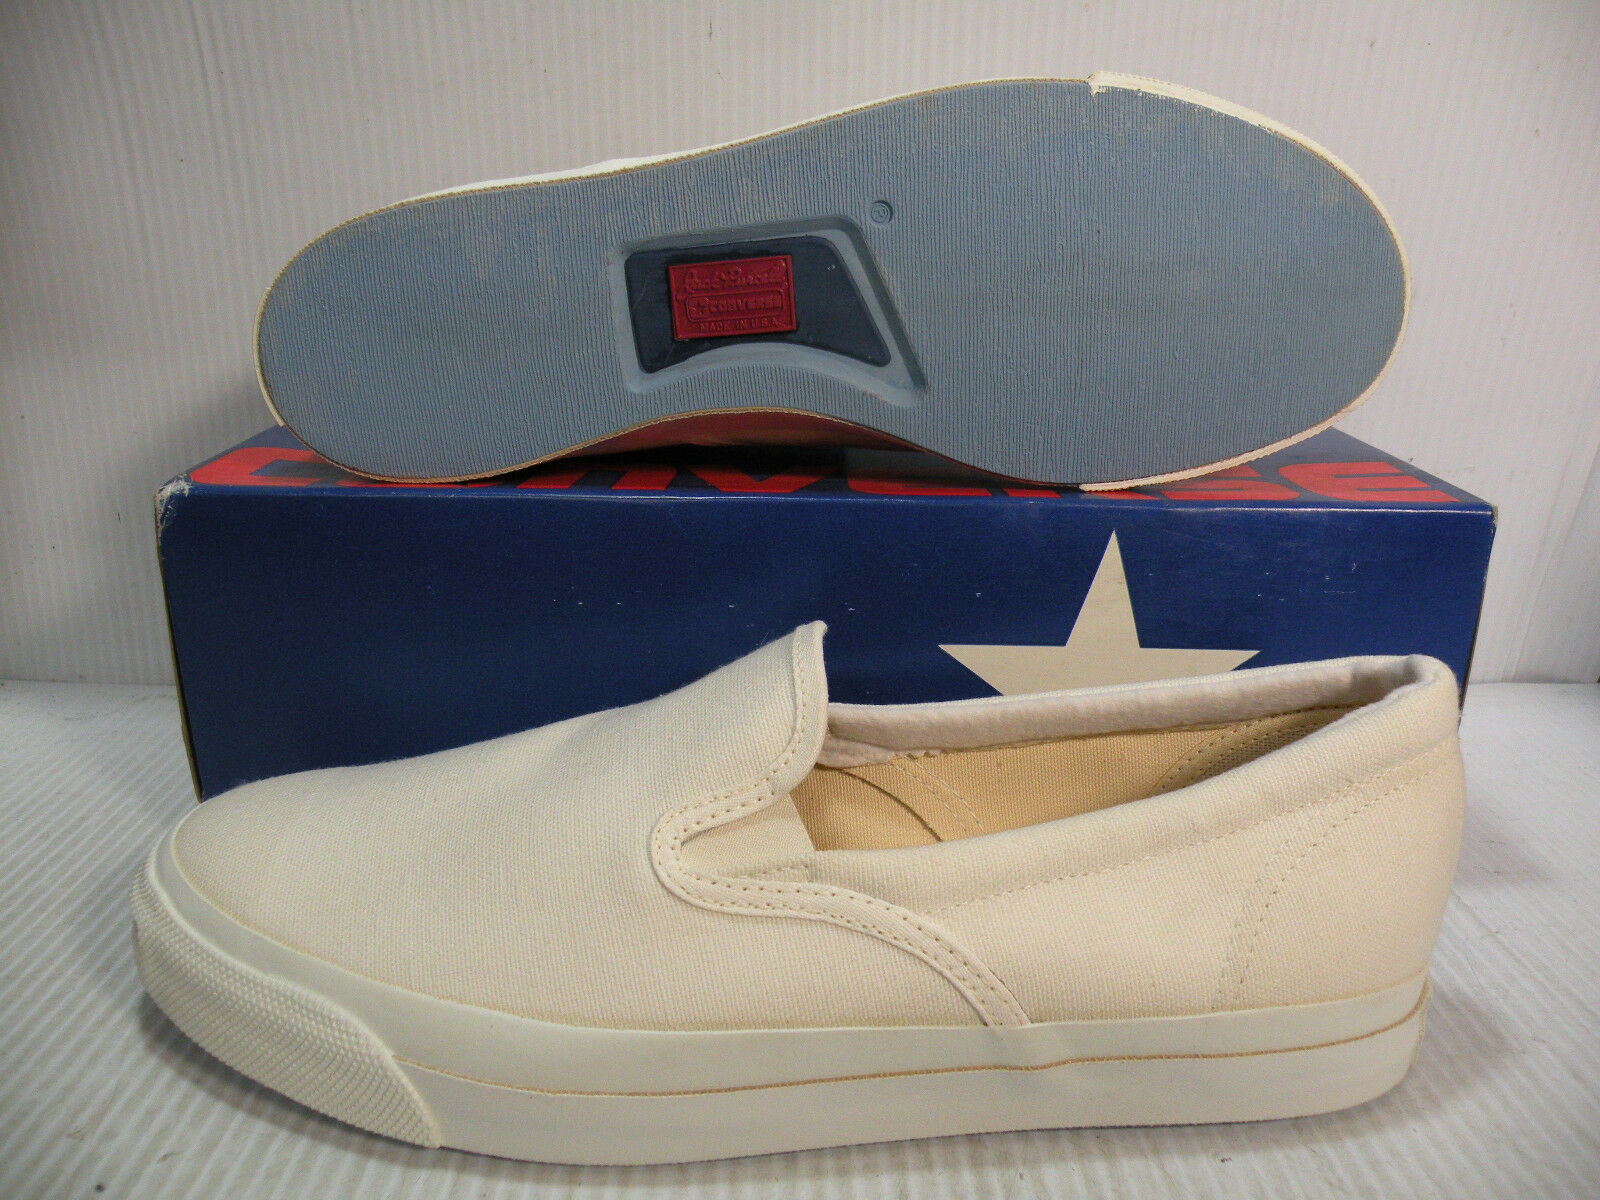 CONVERSE JACK PURCELL SLIP-ON VINTAGE  USA  MEN scarpe Dimensione 12 bianca A4423 NEW